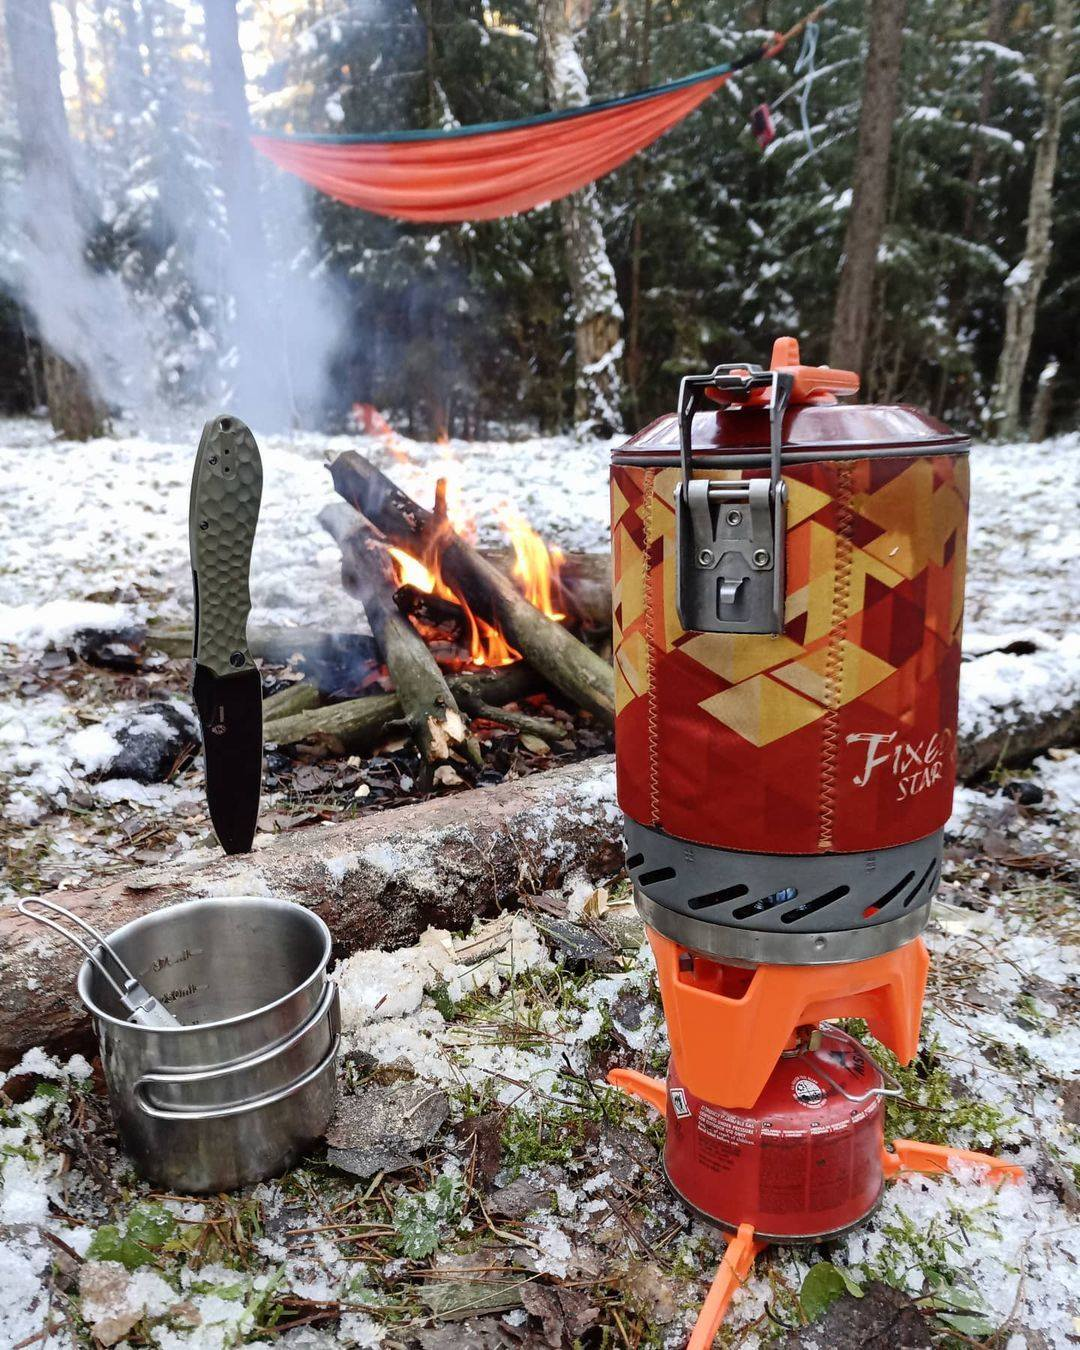 Camping in the chill season can be fun - if you prepare: